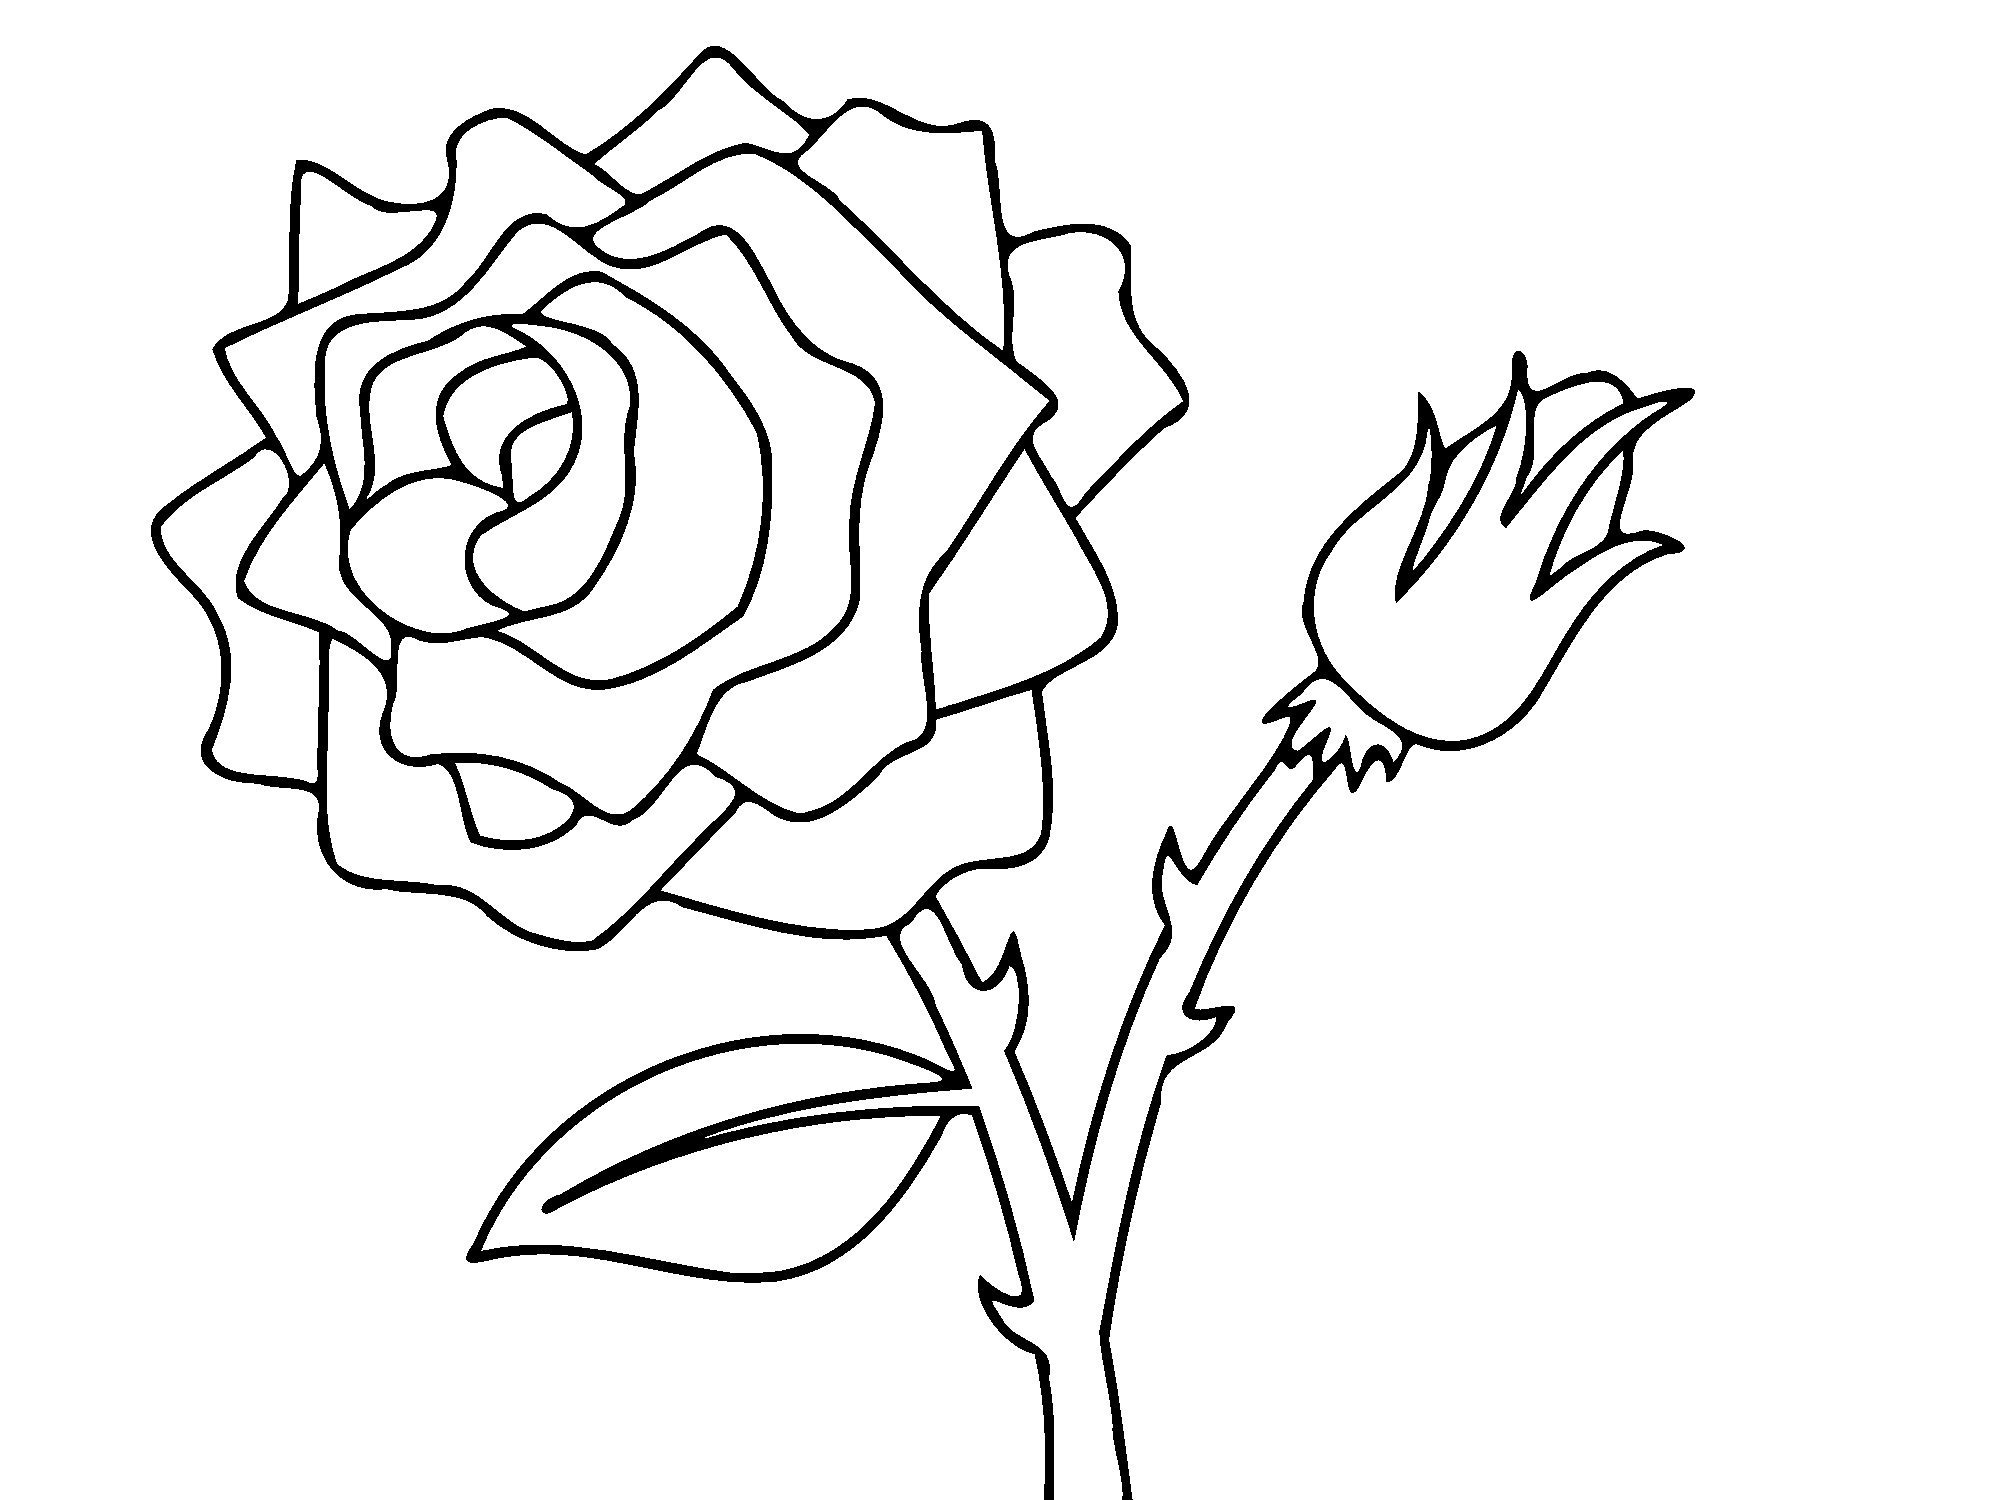 rose coloring pages for kids - photo#6